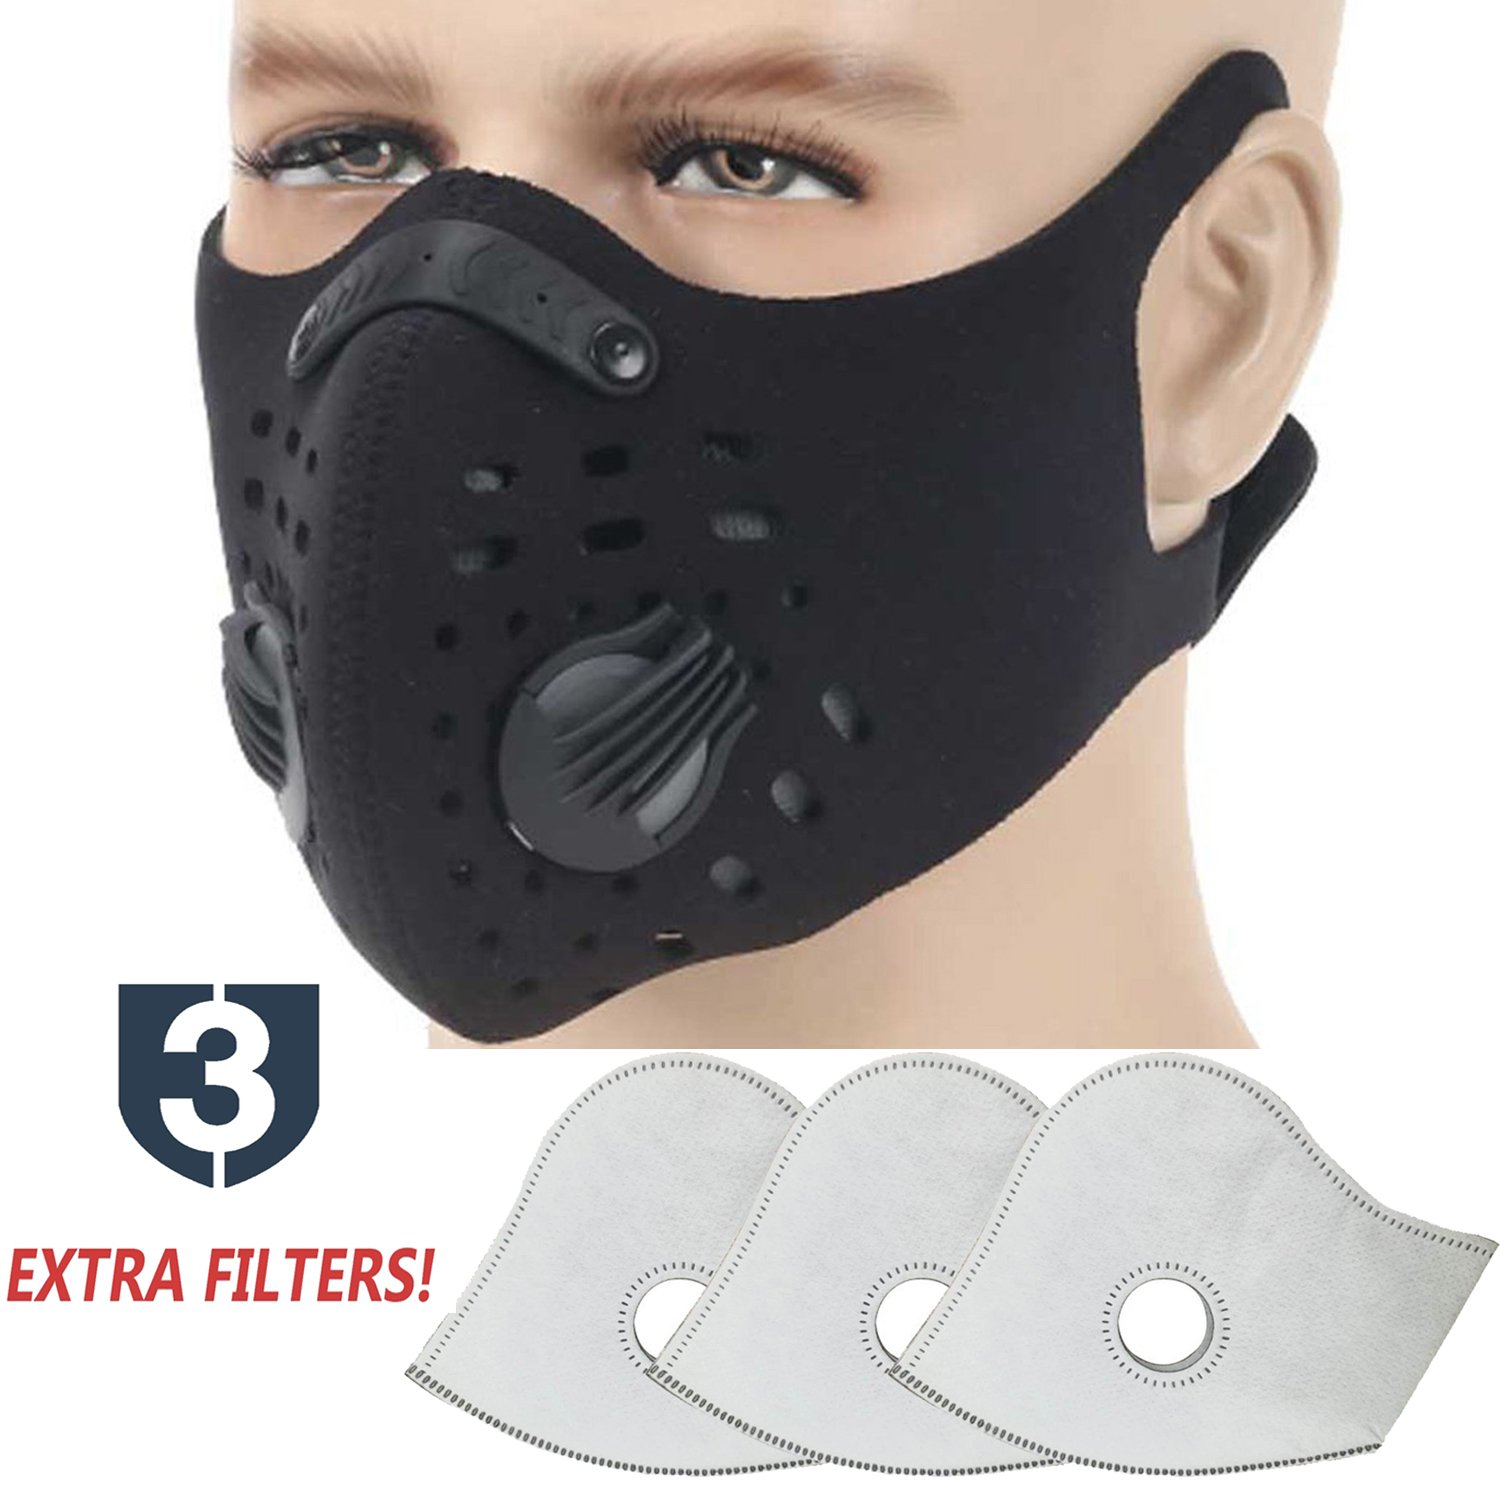 Dust Mask, Moho Upgrade Version Activated Carbon Dustproof Mask Windproof Foggy Haze Anti-Dust Mask Motorcycle Bicycle Cycling Ski Half Face Mask for Outdoor Activities (Black+3 Extra Filters)